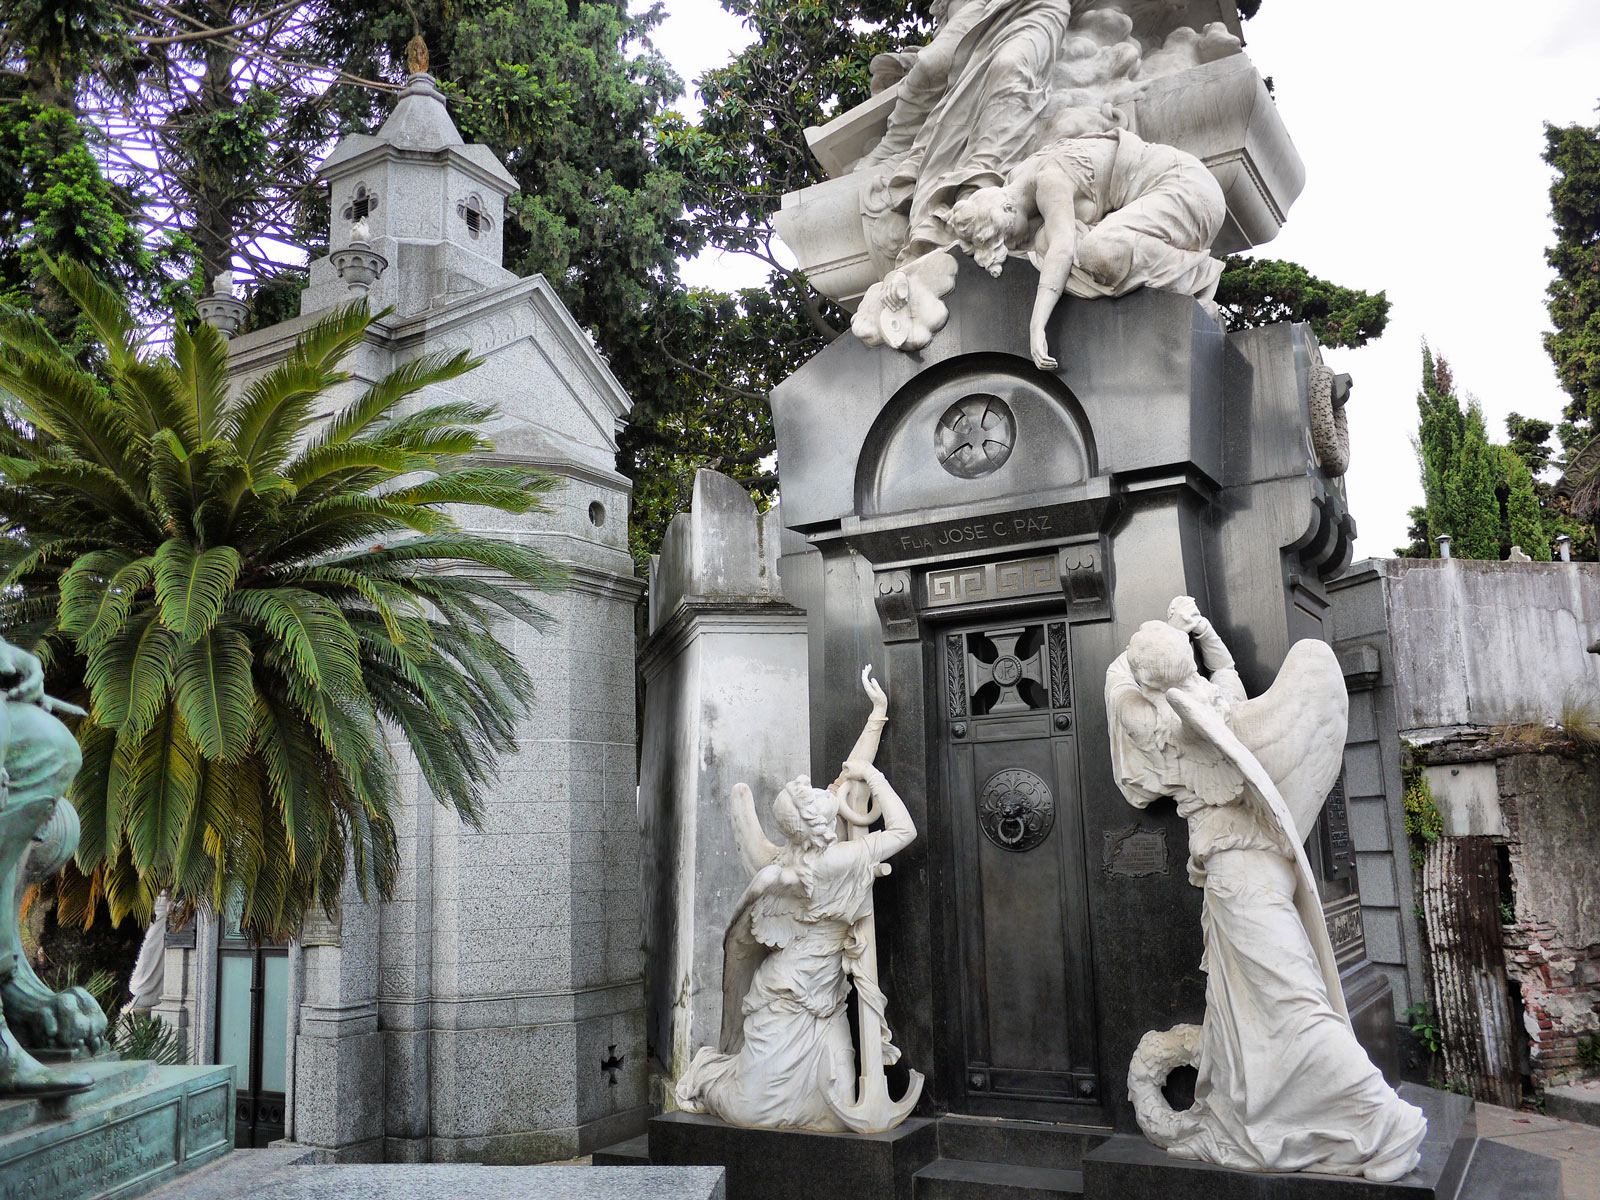 The Glamorous Tombs of Recoleta Cemetery - Buenos Aires, Argentina